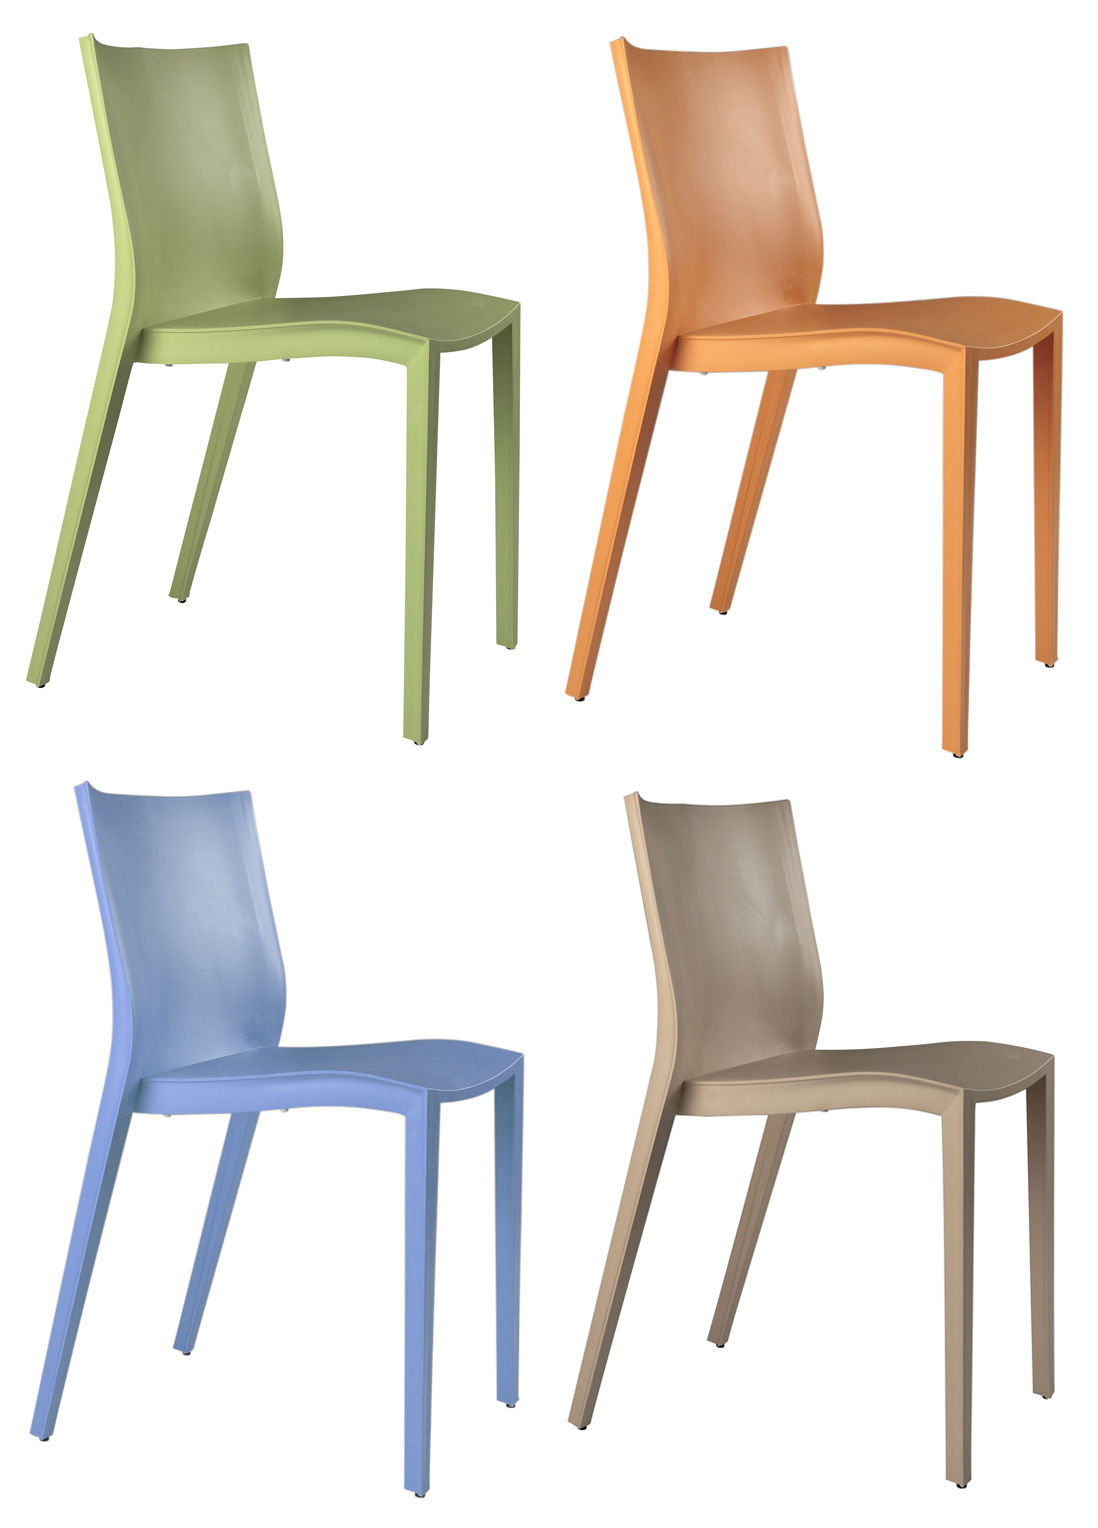 Chaise Slick Slick Starck Miniature Mini Slick Slick Lot De 4 Chaises Vert Orange